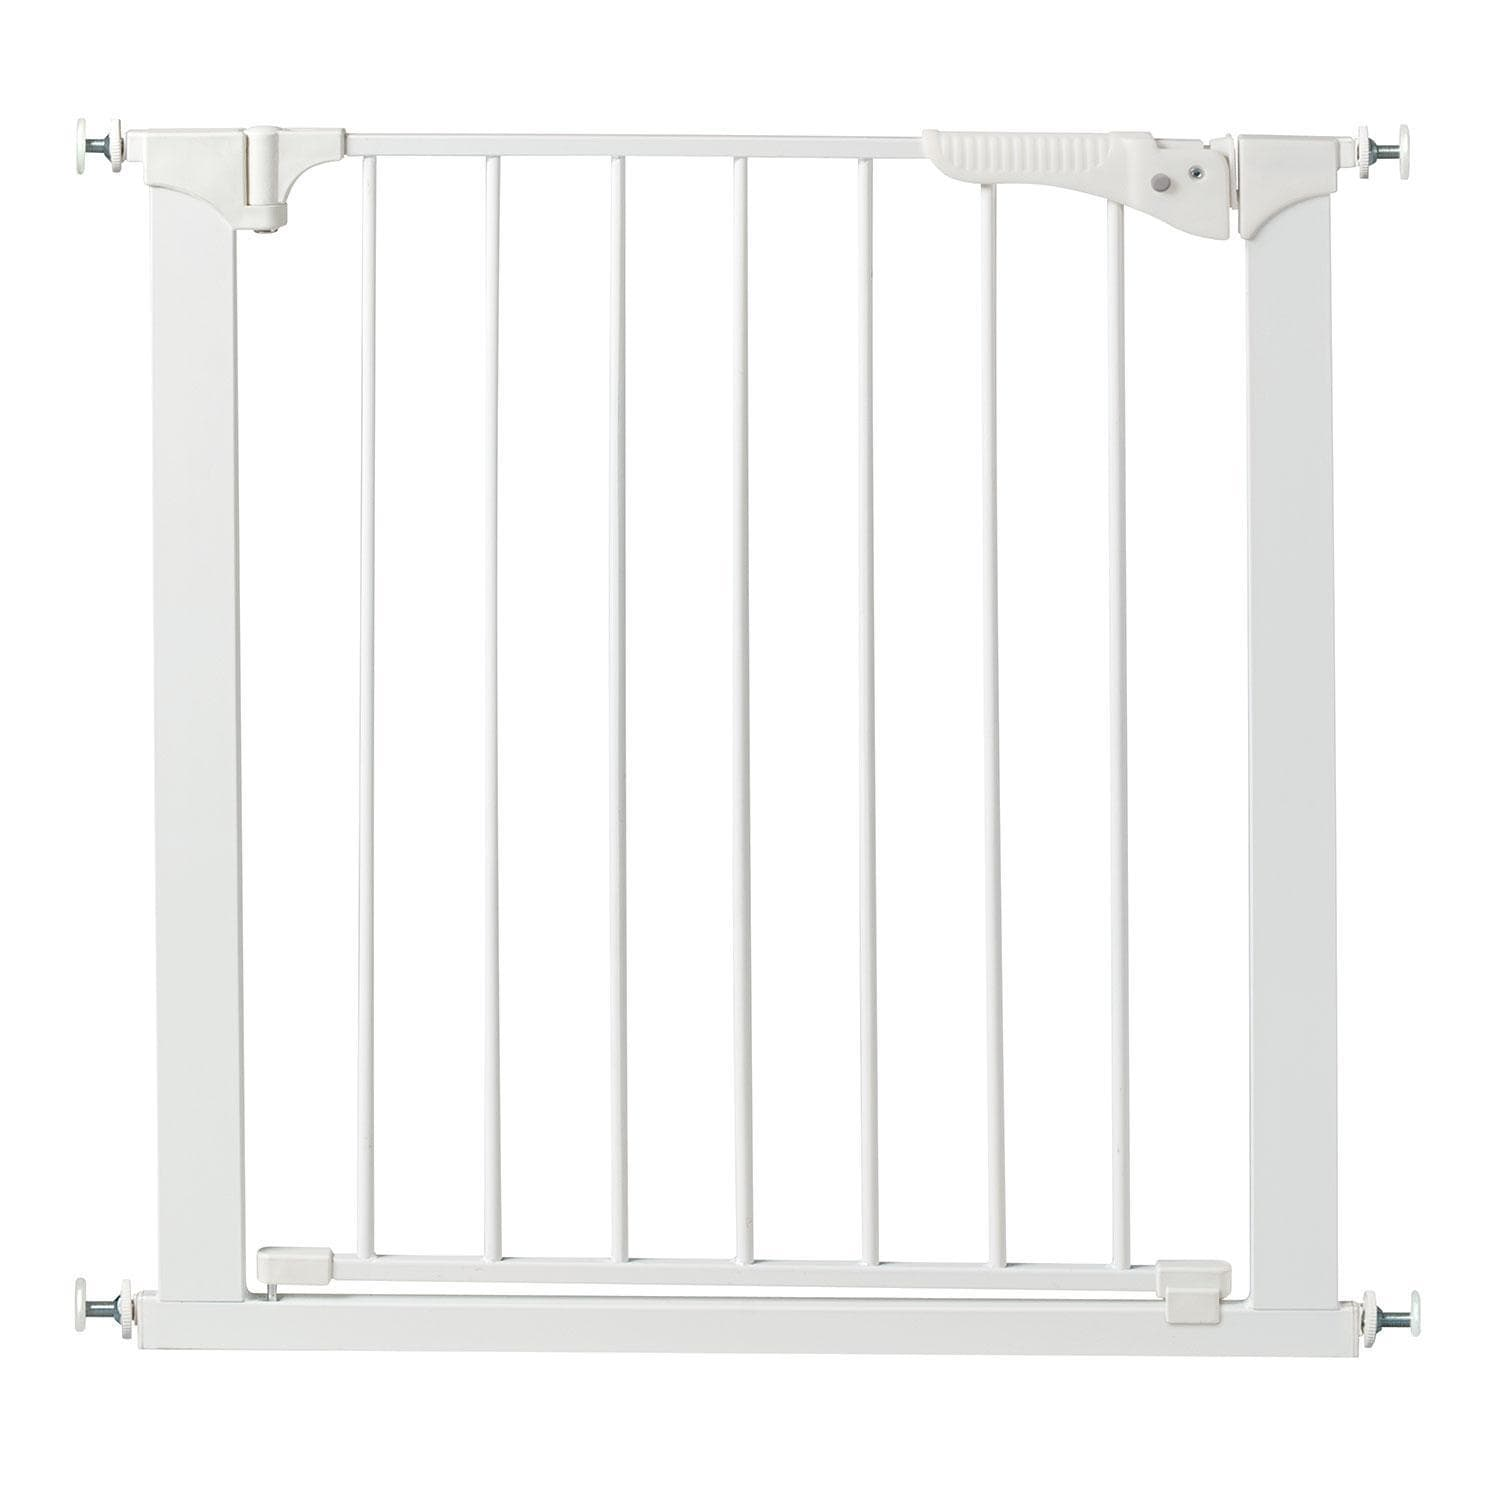 "Kidco Command Pressure Pet Gate White 29"" - 32"" X 1.75"" X 29.5"" - Got2Save"